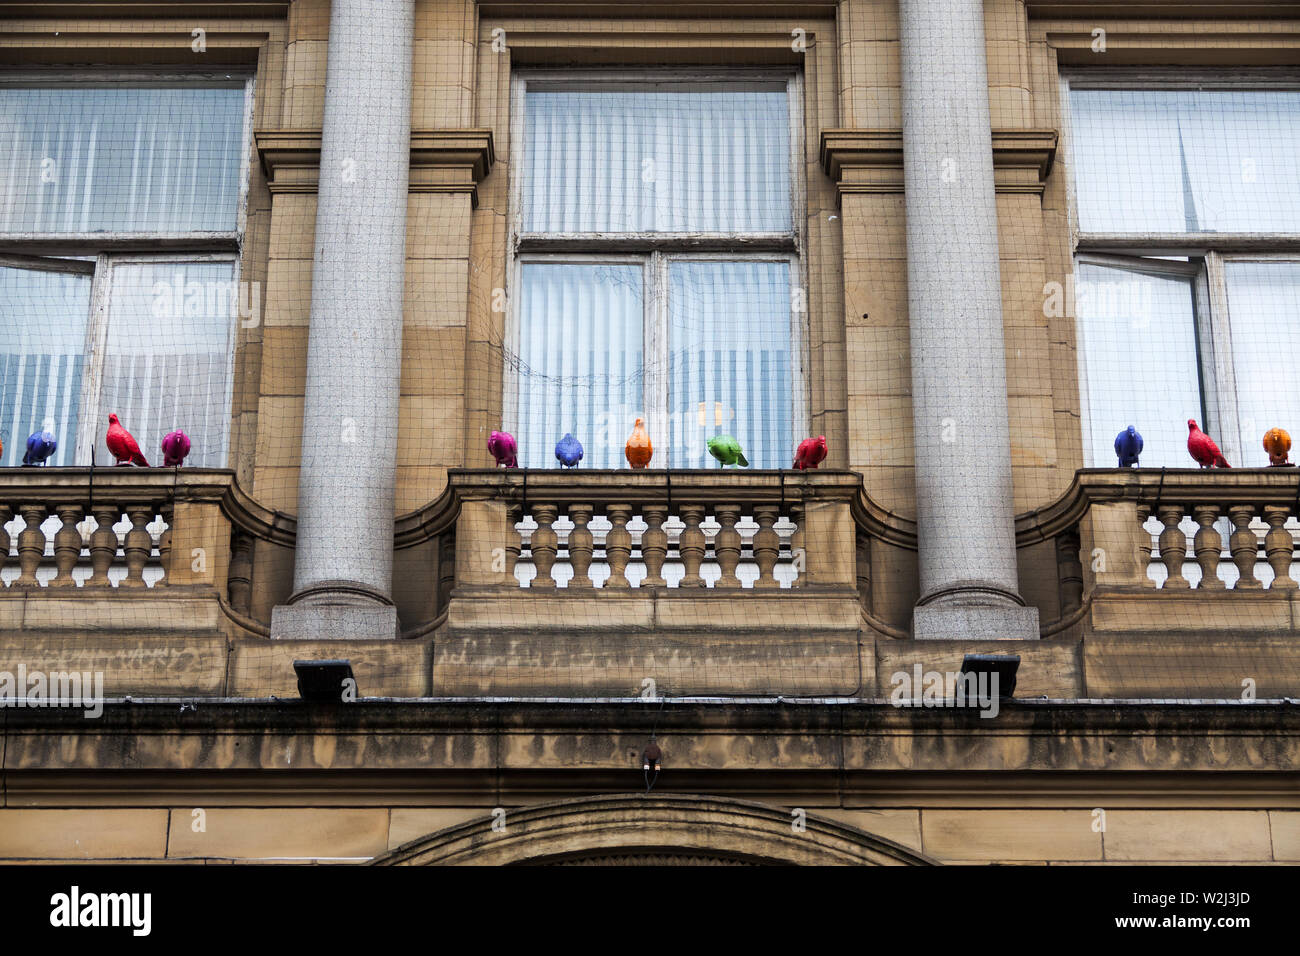 Colouful plastic pigeons on a building designed as a deterrent to stop live pigeons roosting there at night - Stock Image